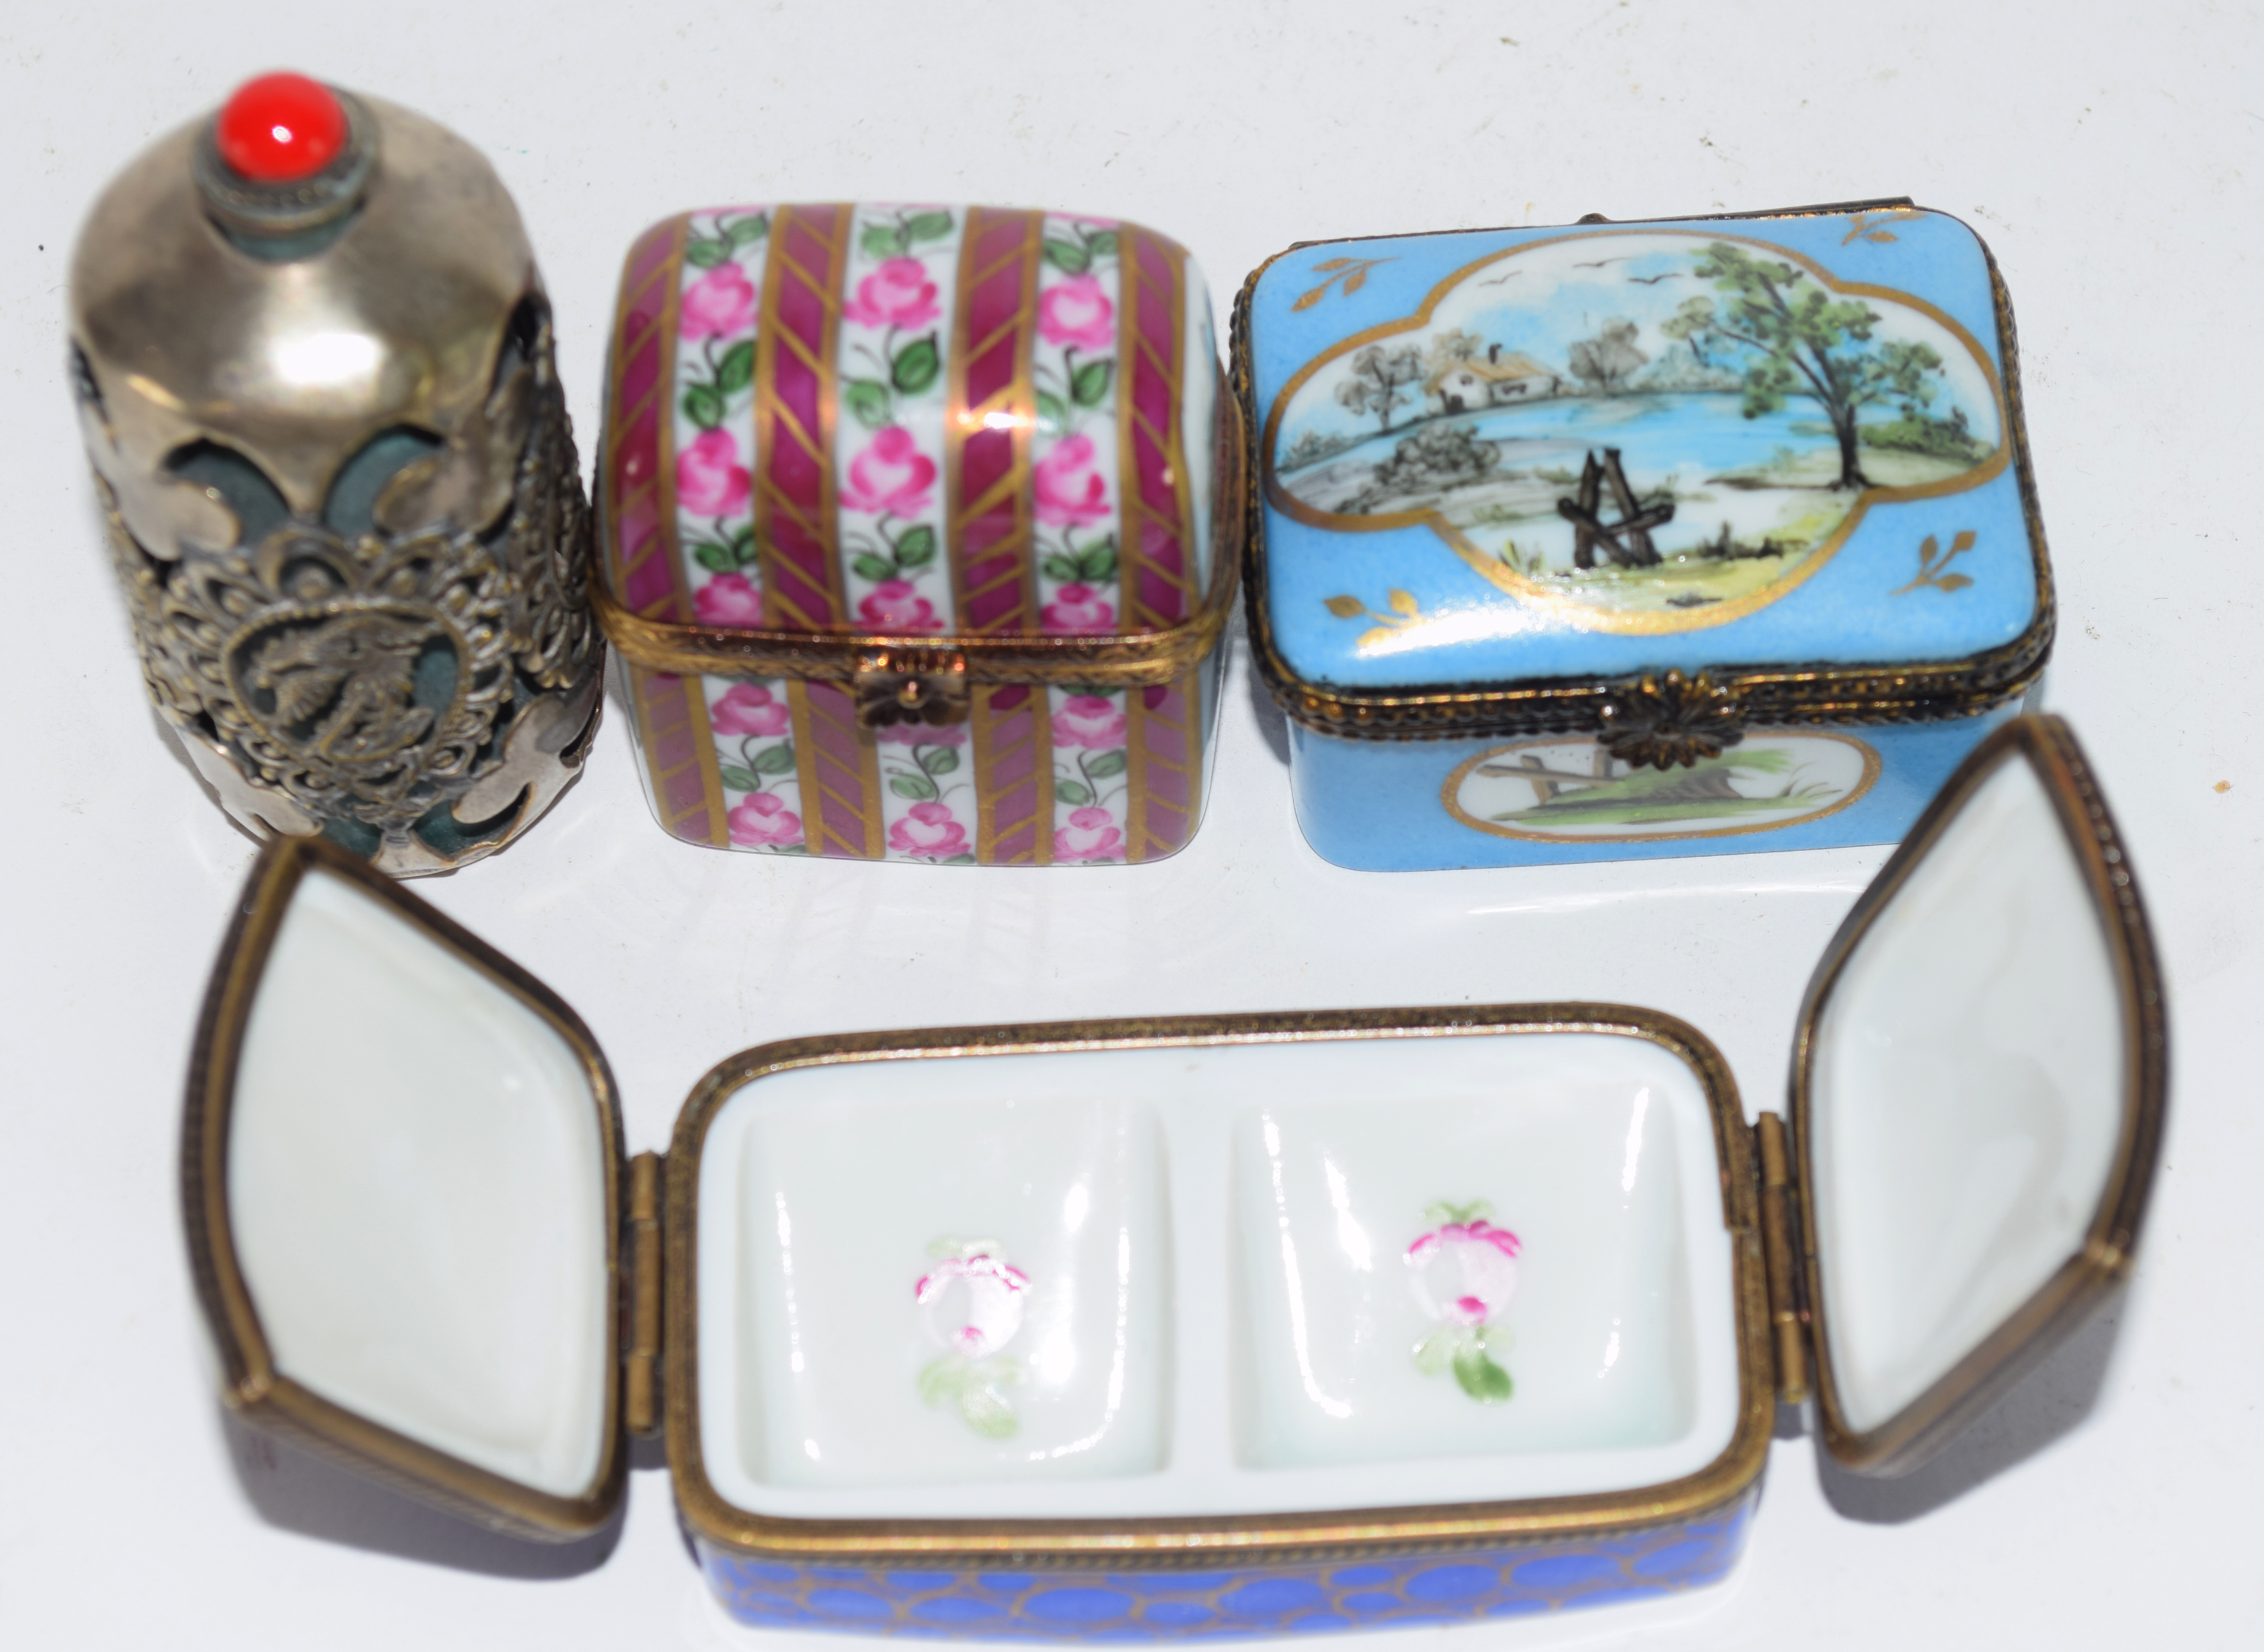 Small plastic bag containing quantity of 19th century enamel boxes by Limoges, (4) - Image 3 of 5